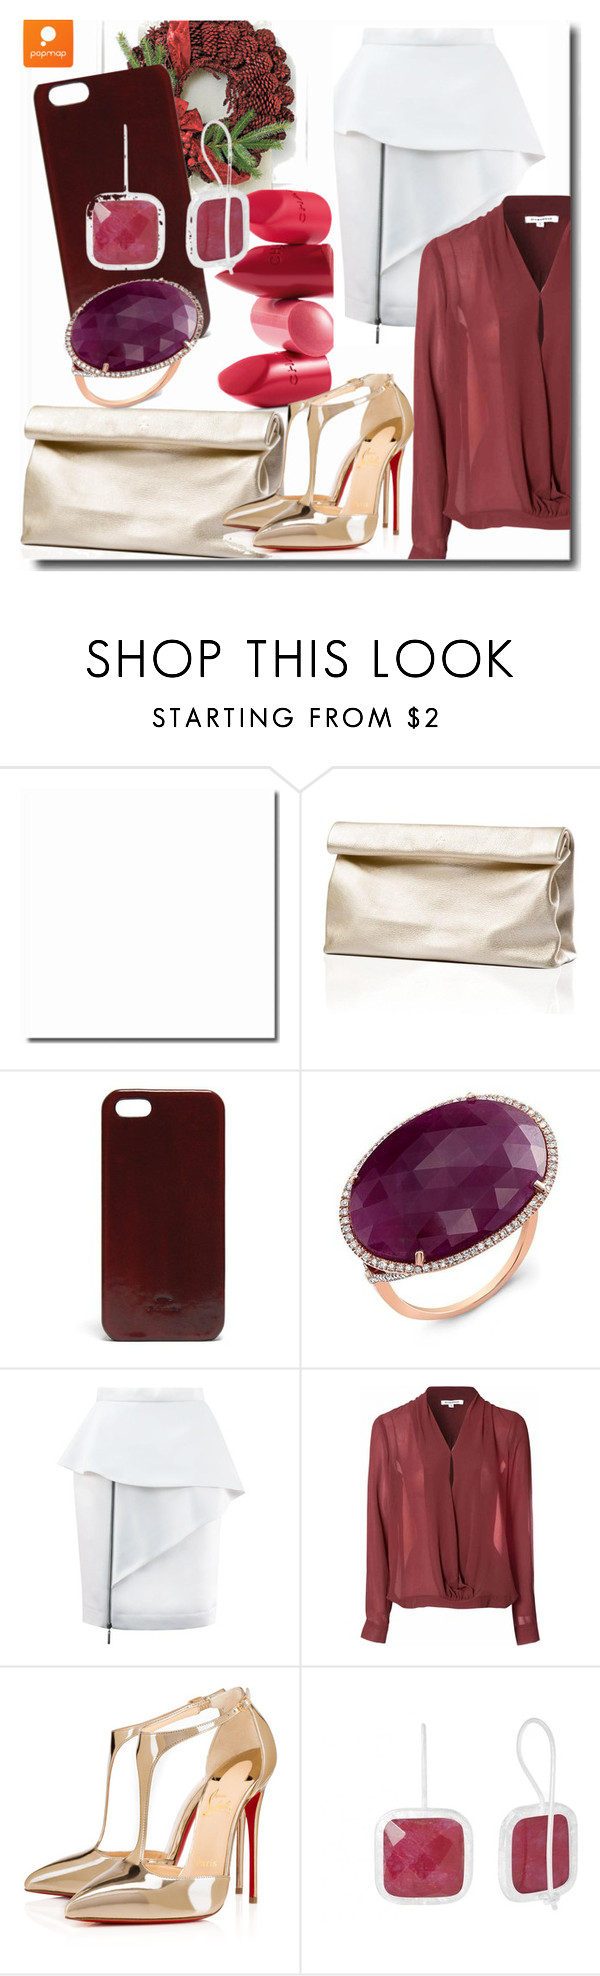 """Popmap 34"" by goldenhour ❤ liked on Polyvore featuring Rossetto, Marie Turnor, Glamorous and Christian Louboutin"